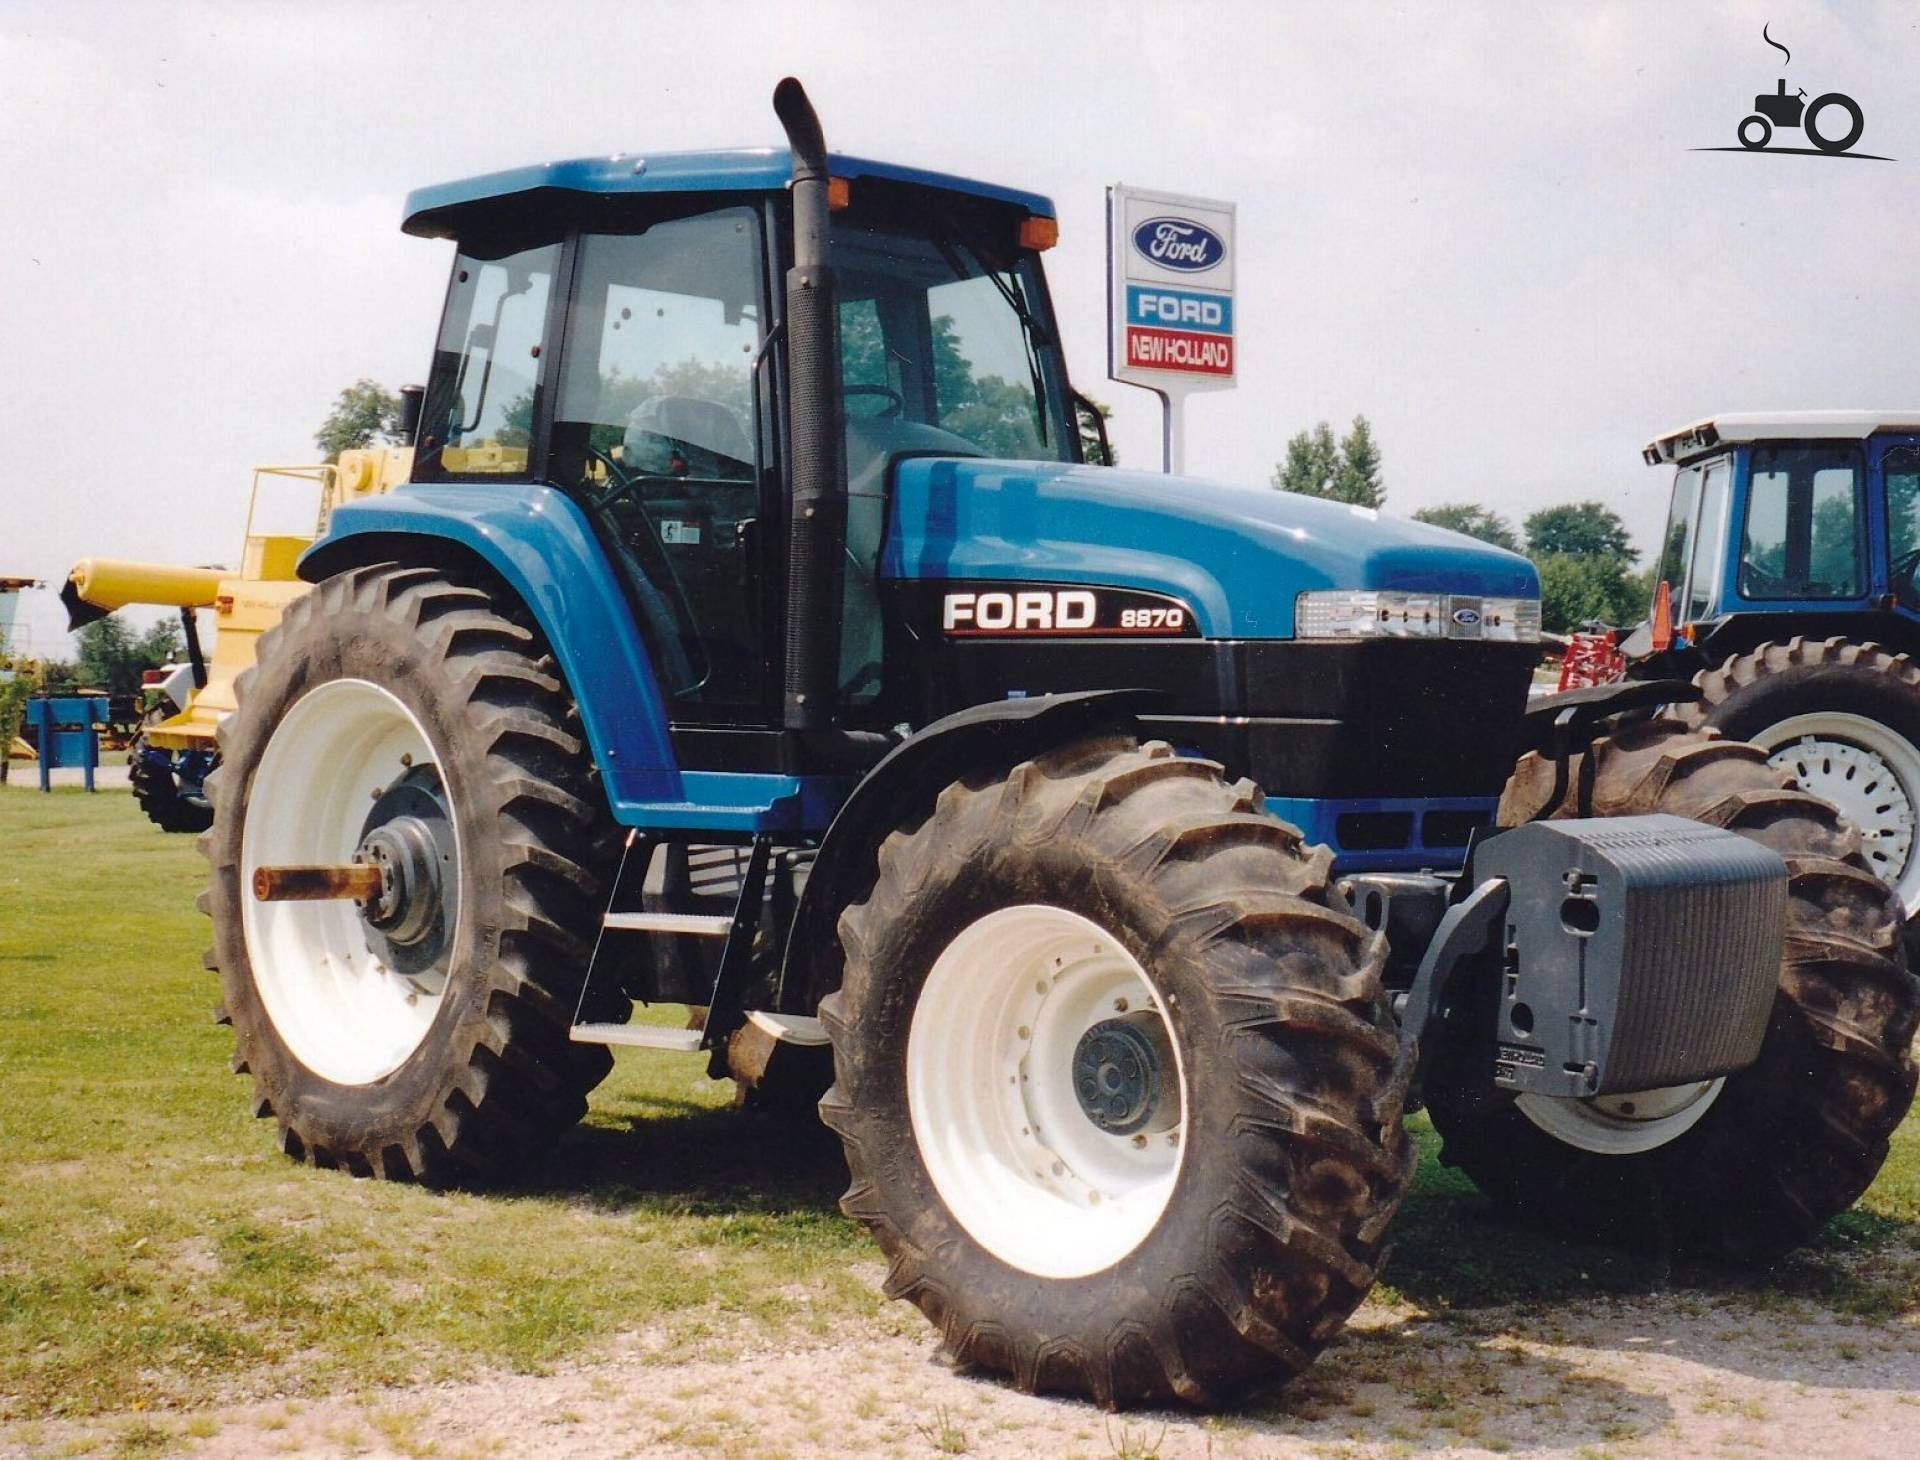 afbeeldingsresultaat voor tractorfan ford ford new holland ford